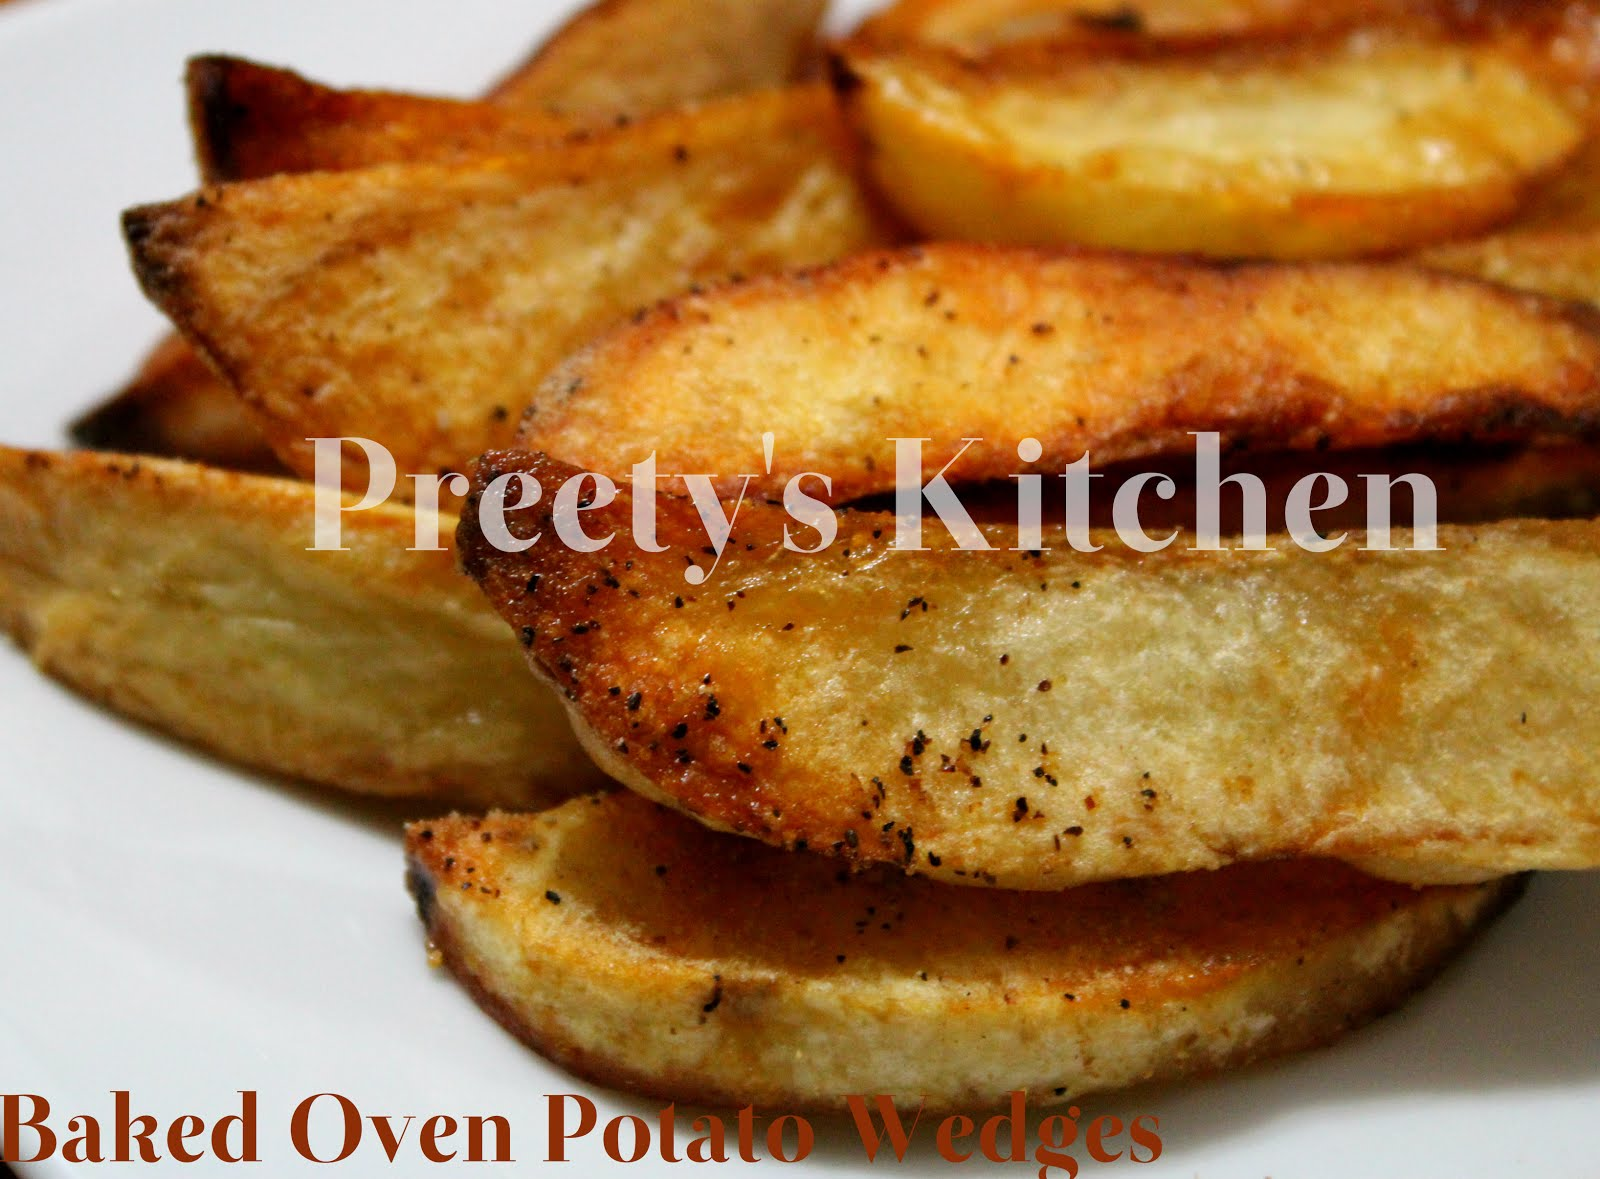 Preety's Kitchen: Baked Oven Potato Wedges